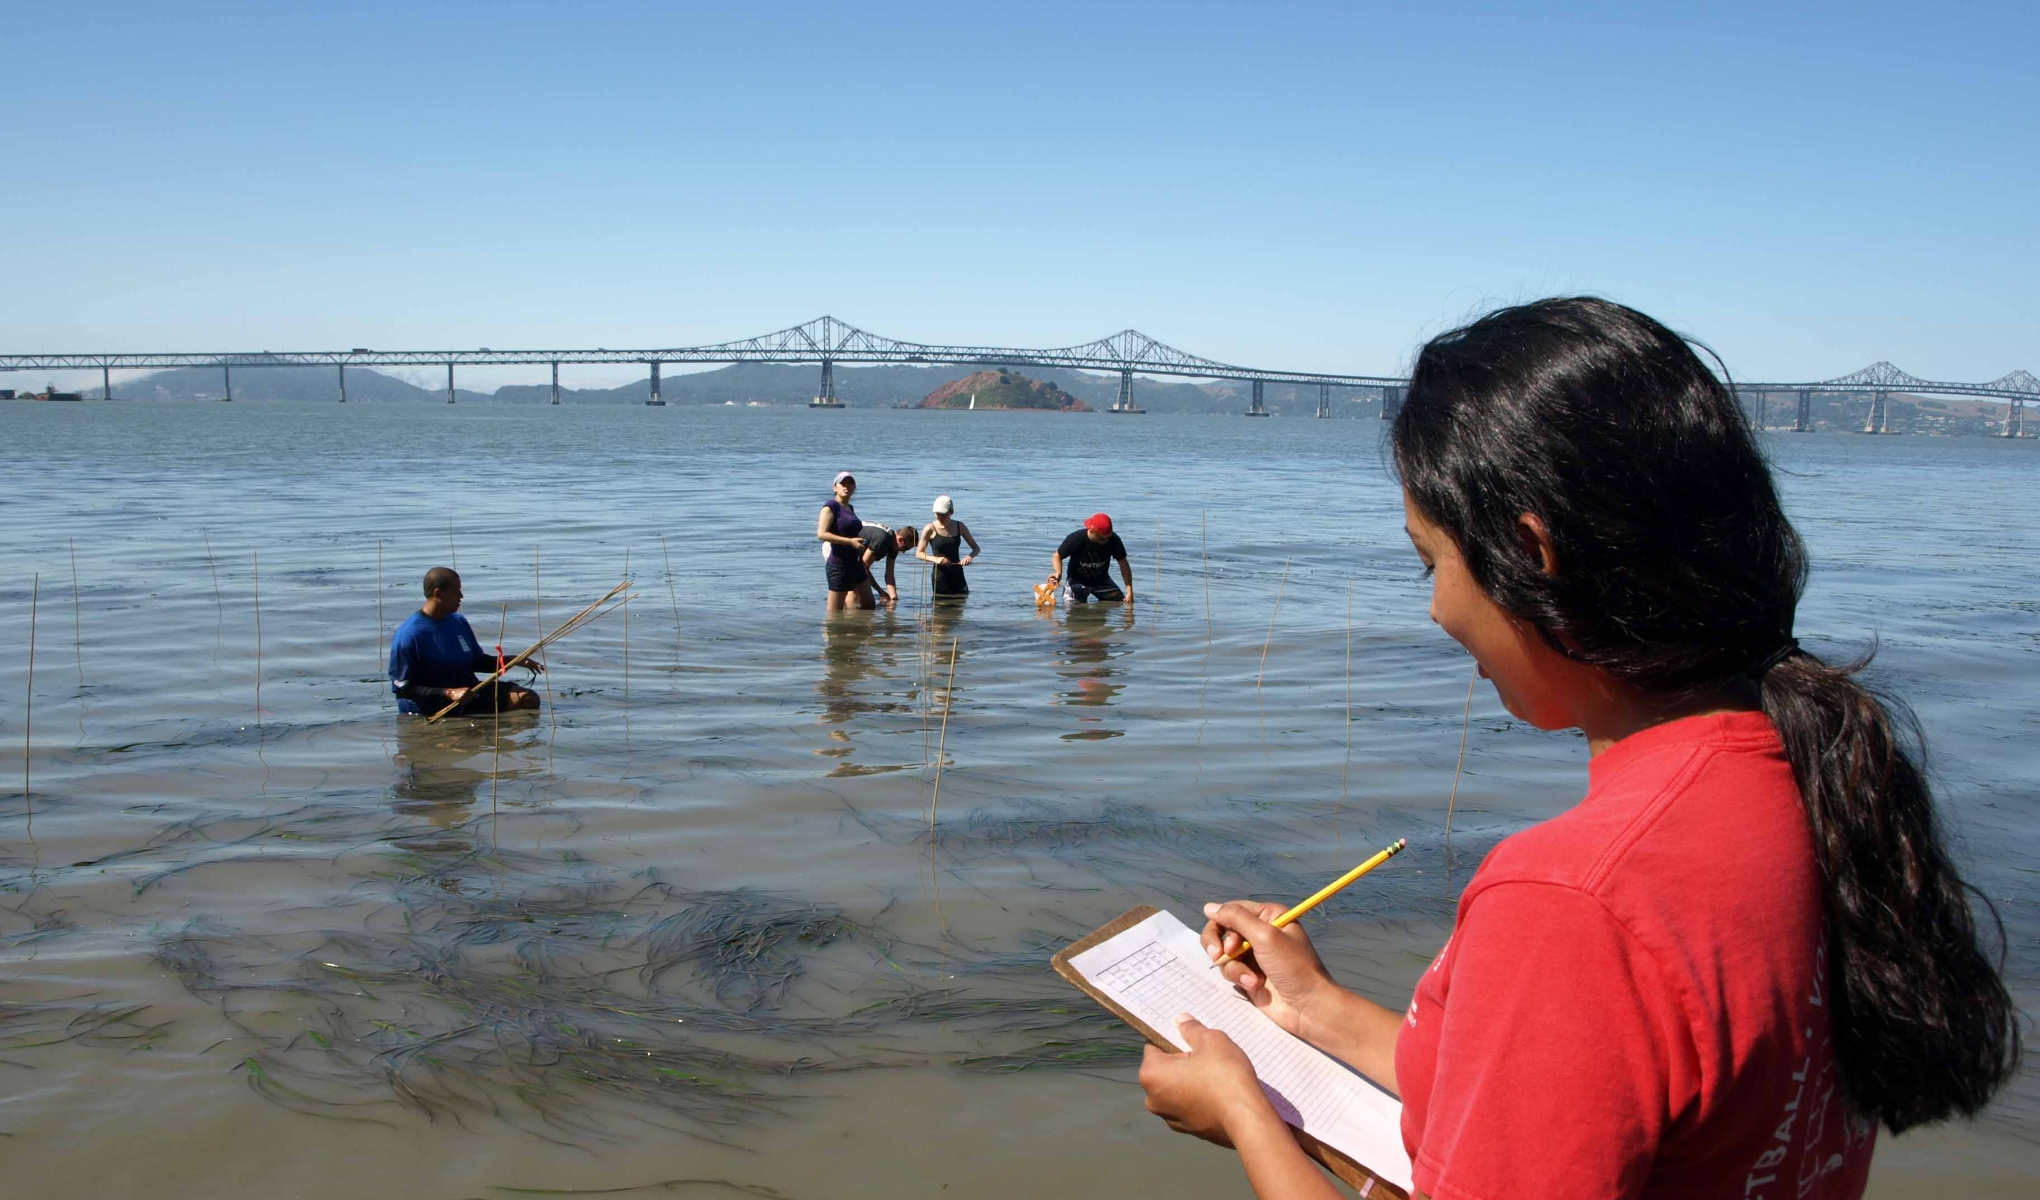 With the Richmond Bridge in the background, a female student in a red T-shirt documents observations on a clipboard while a group of five student researchers wade hip-deep in the bay